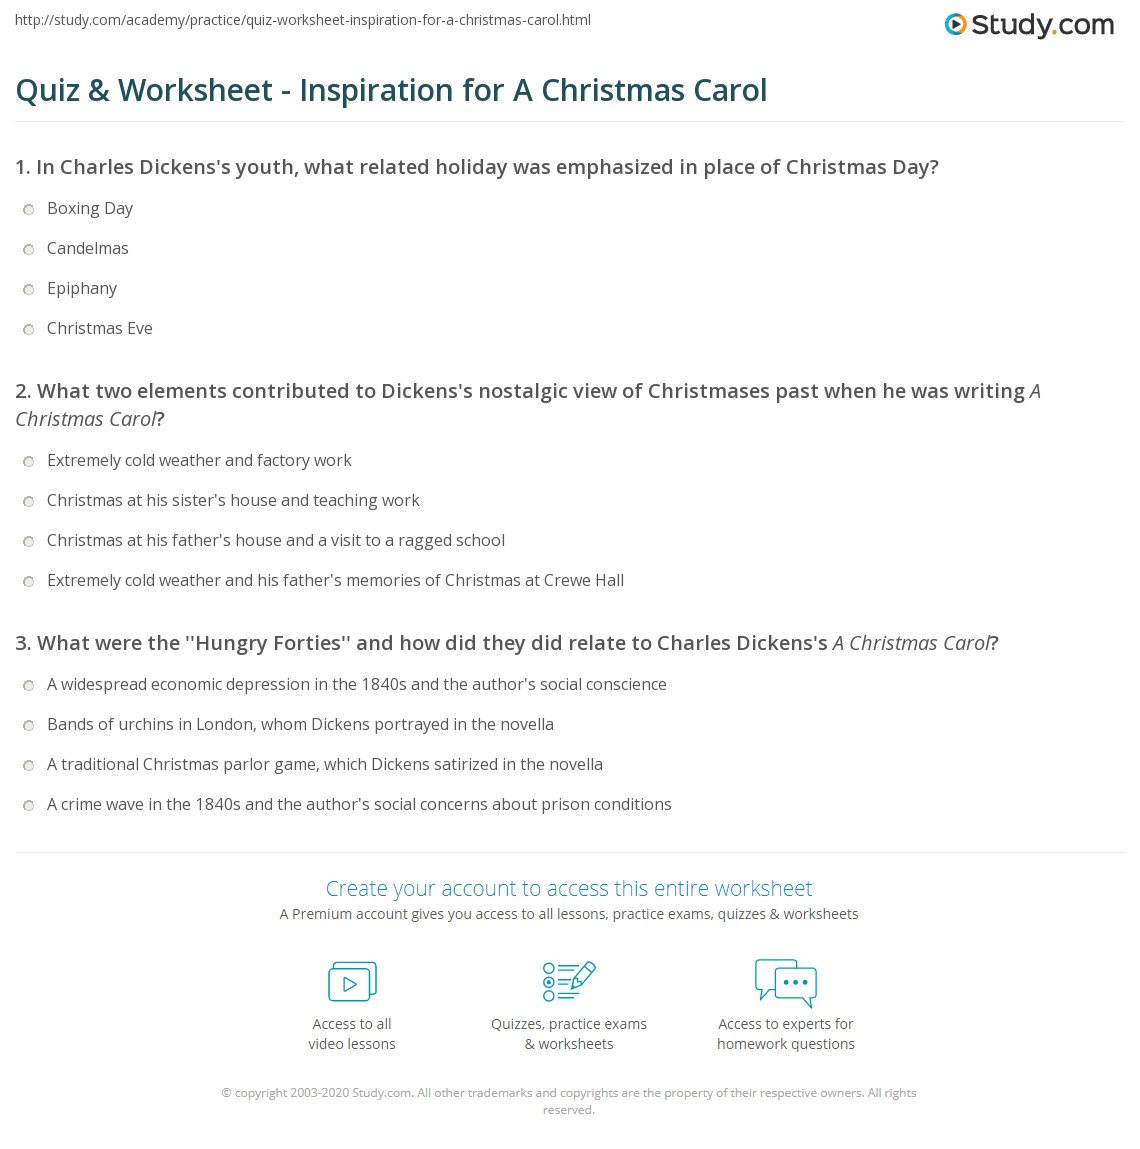 quiz worksheet inspiration for a christmas carol com print why did charles dickens write a christmas carol worksheet